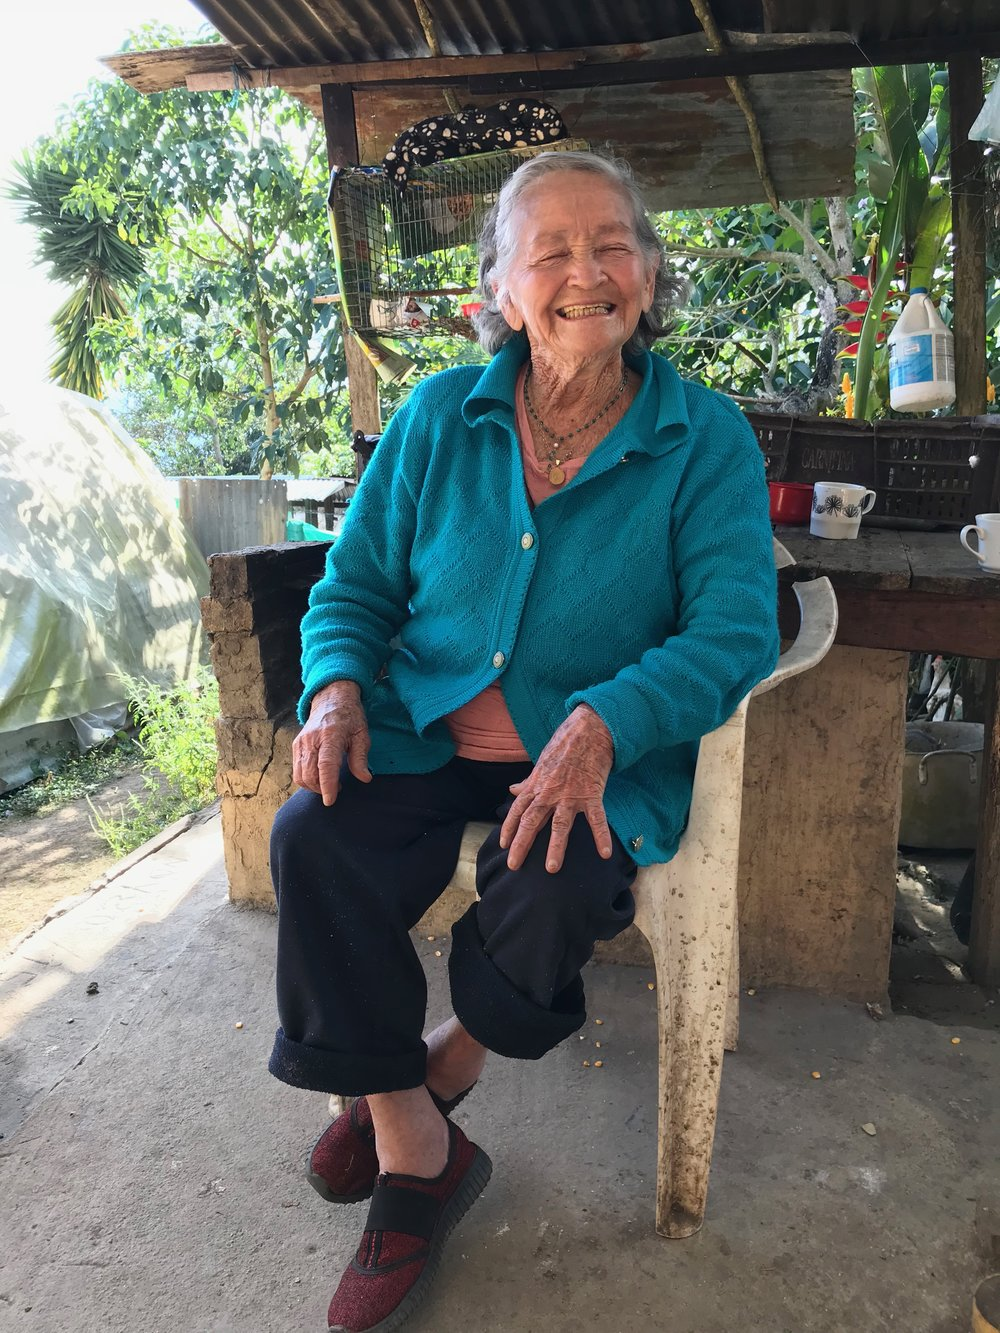 The late Dioselina on her farm, August 2018, aged 84. We are deeply saddened by the passing of this dedicated coffee producer.